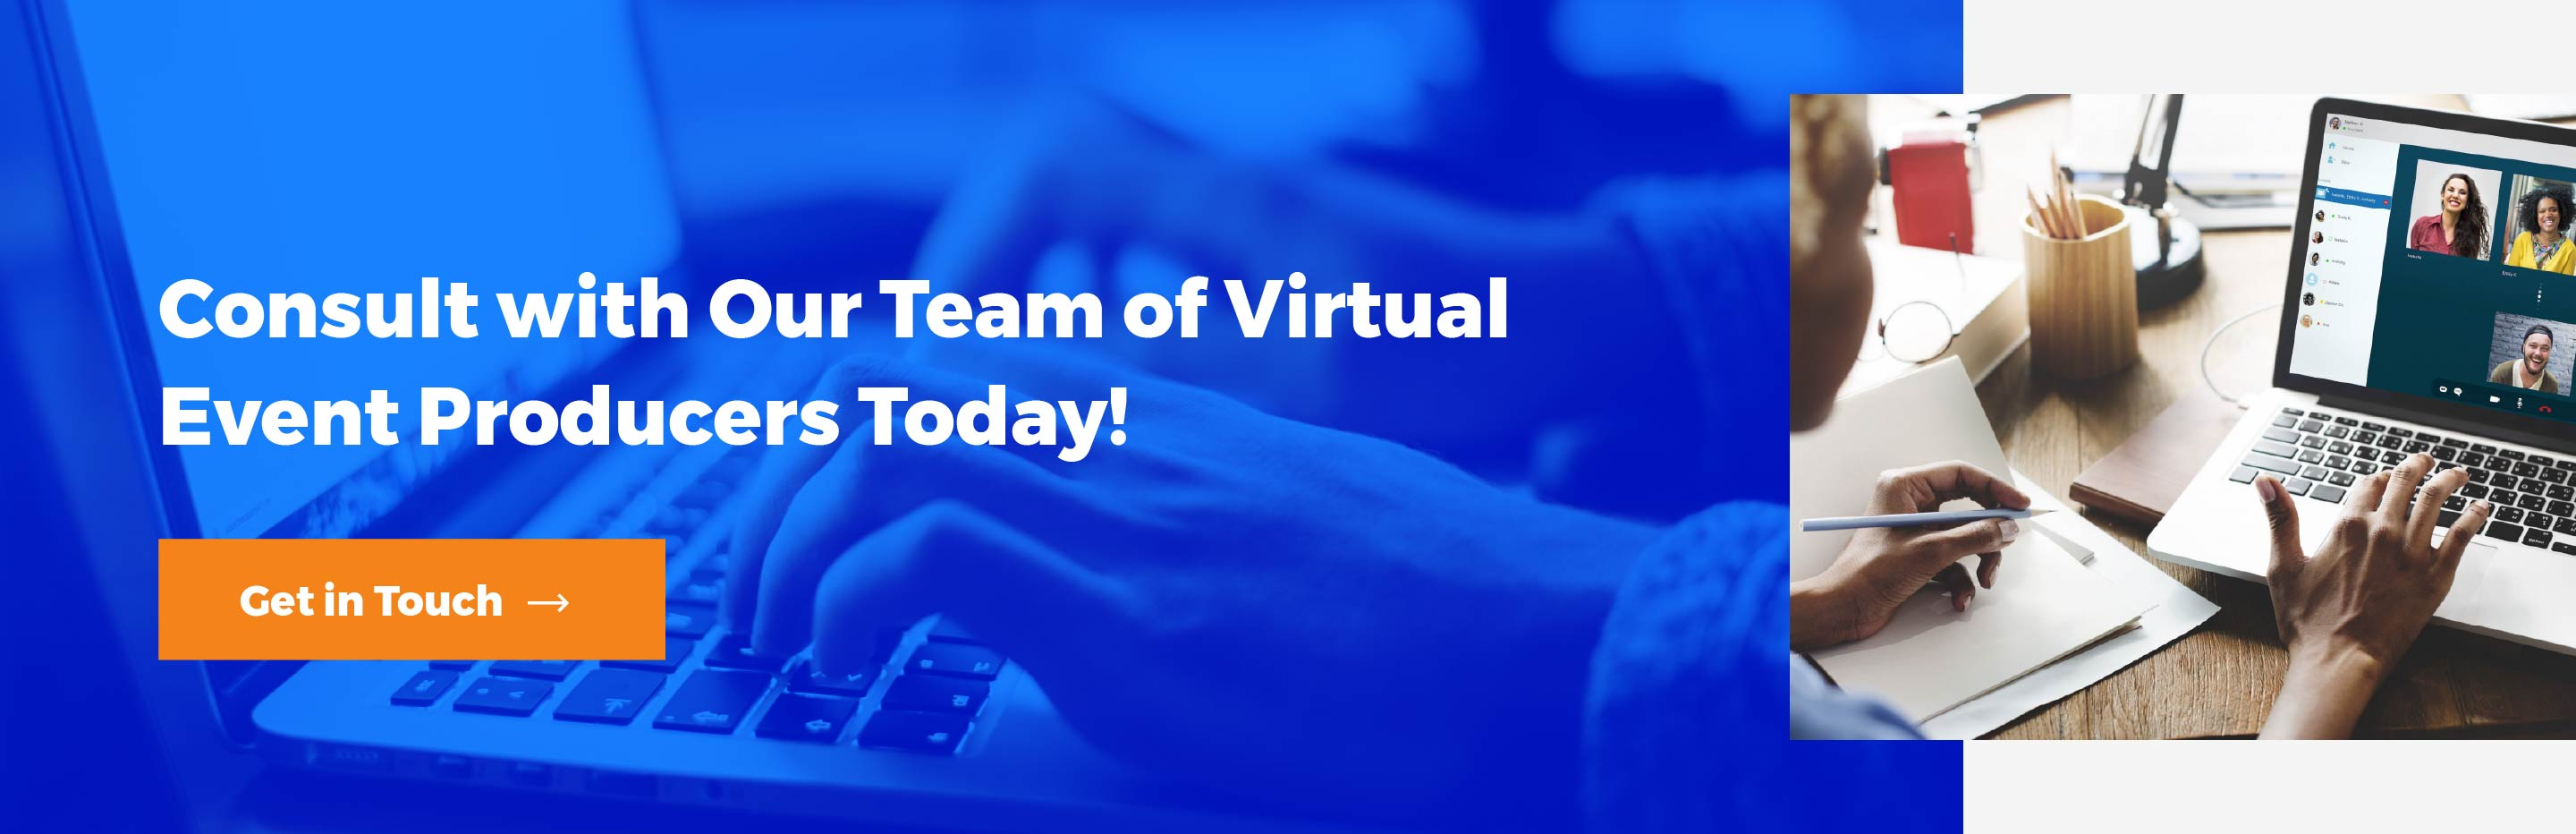 Consult with our team of virtual event producers today!